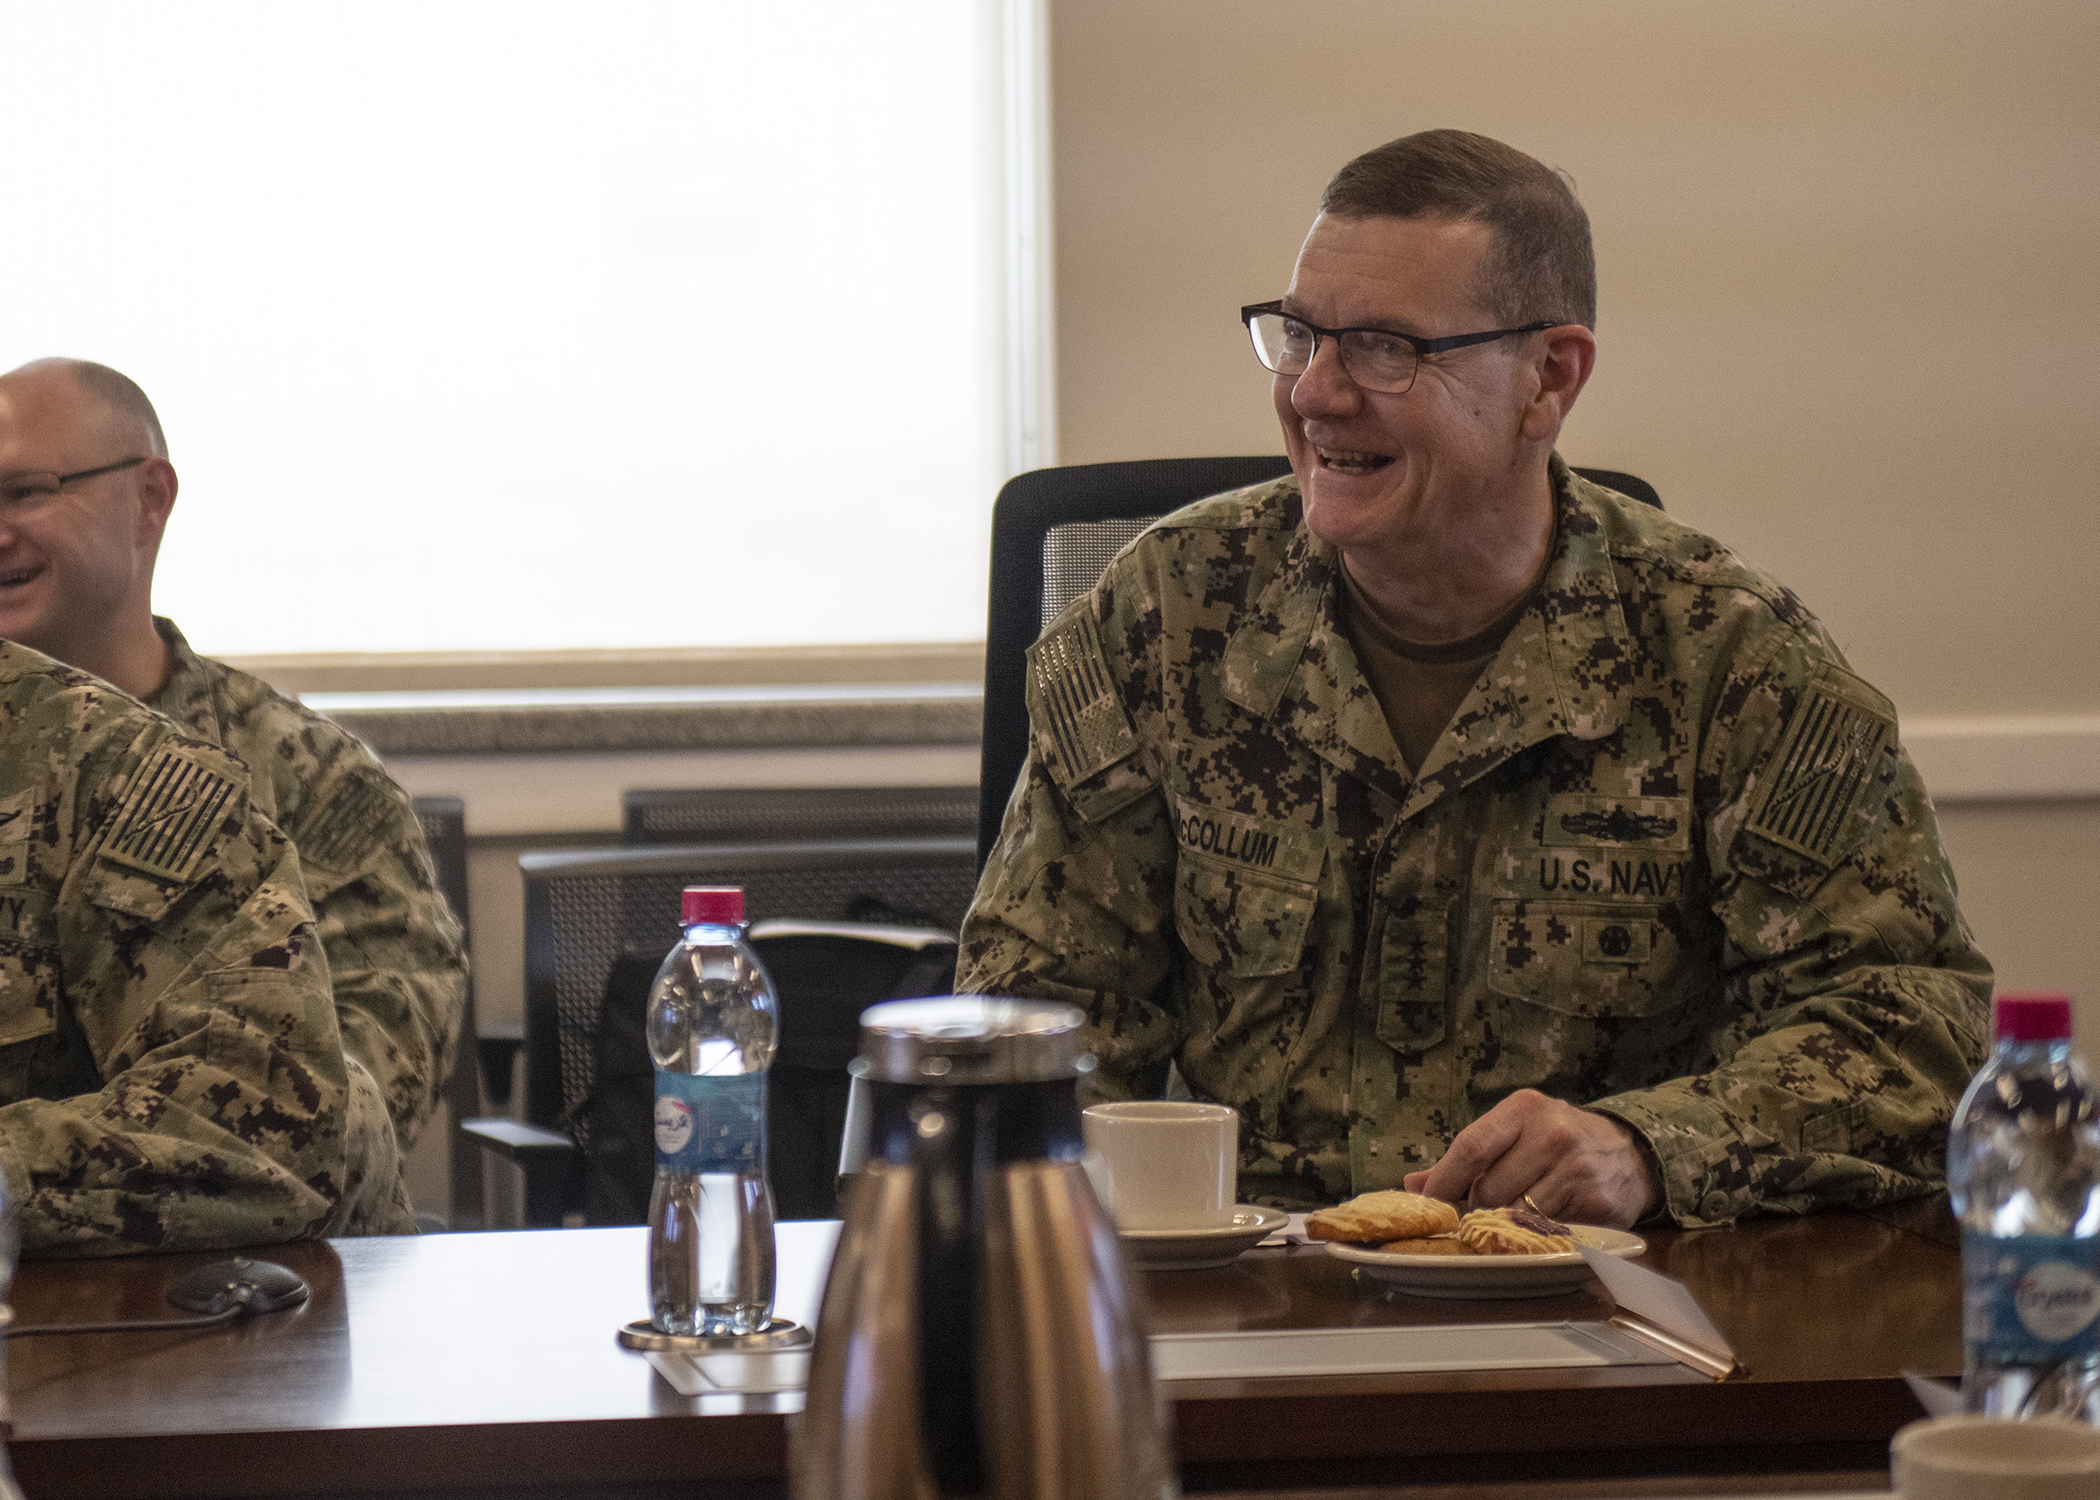 Chief of Navy Reserve Vice Adm. Luke McCollum laughs during a meeting with Combined Joint Task Force - Horn of Africa leadership during a unit mission brief about operations in the Horn of Africa while visiting Camp Lemonnier, Djibouti, Feb. 3, 2019. McCollum visited as part of a tour of Reserve units to answer questions, discuss leadership initiatives and interact with local Sailors. (U.S. Air Force photo by Tech. Sgt. Shawn Nickel)